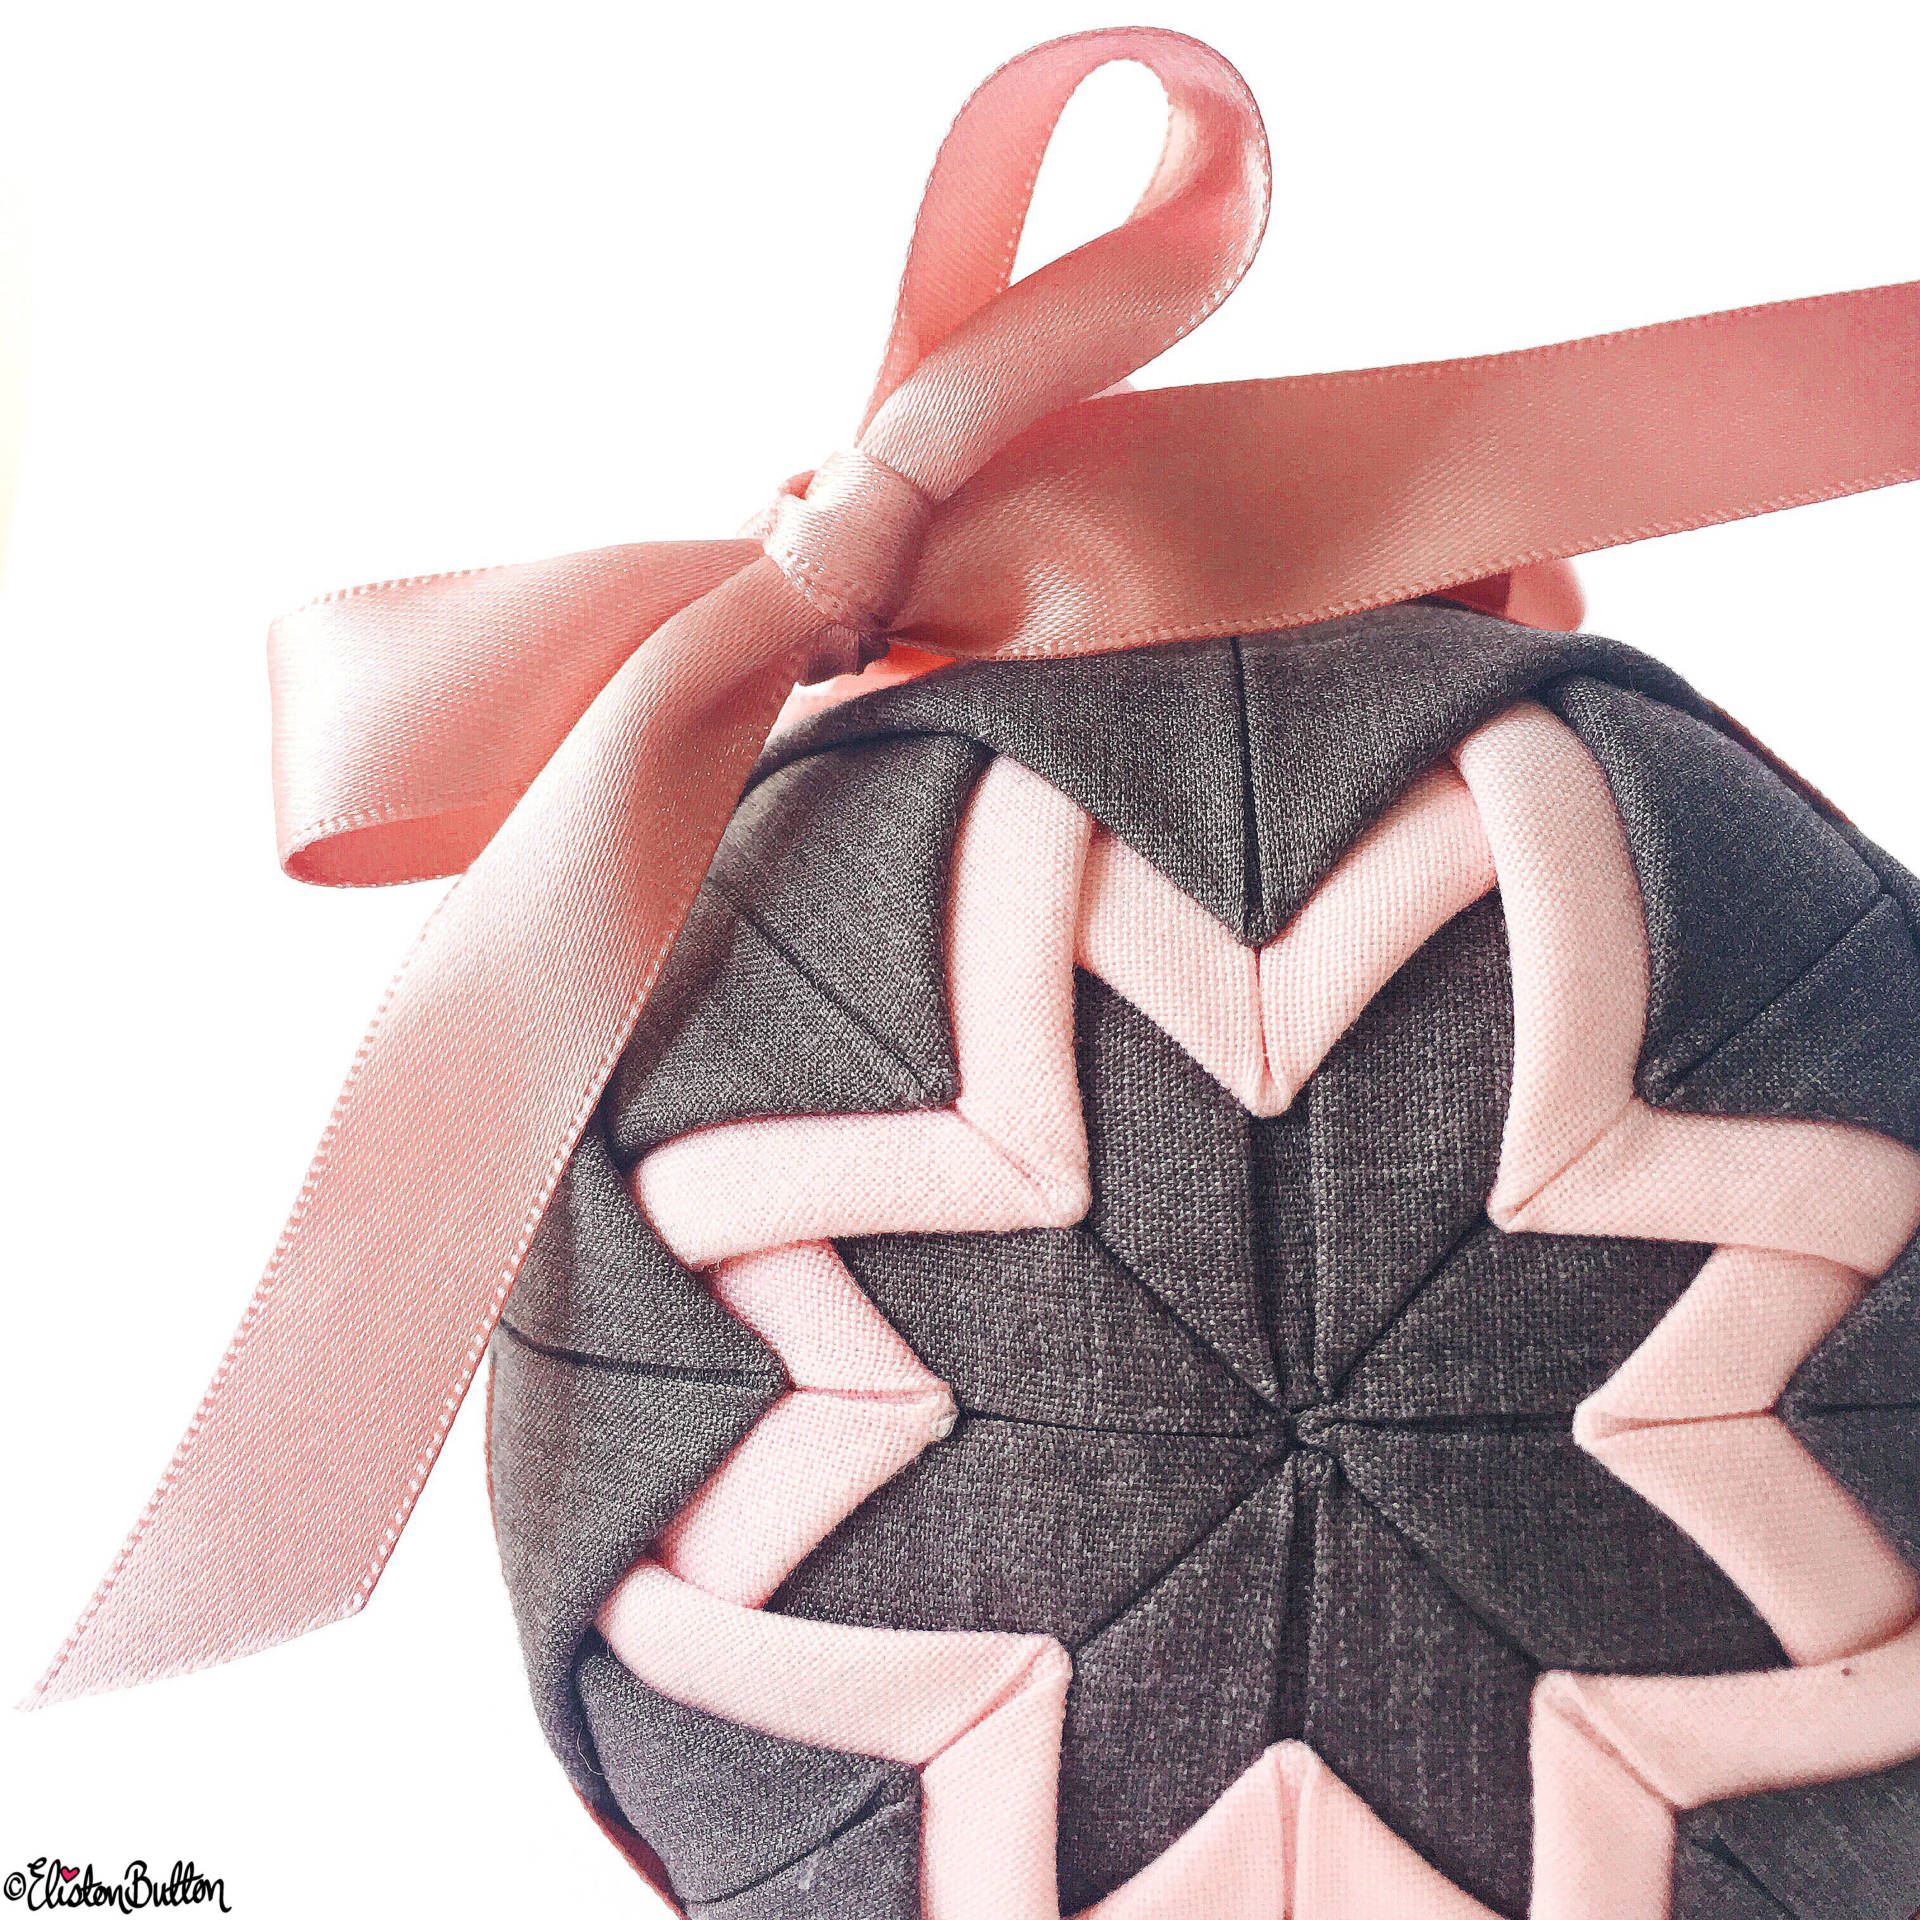 Day 23 - Made by Me - Quilted Slate Grey and Pastel Pink Ball Decoration by Elisotn Button on Etsy - Photo-a-Day – May 2016 at www.elistonbutton.com - Eliston Button - That Crafty Kid – Art, Design, Craft & Adventure.